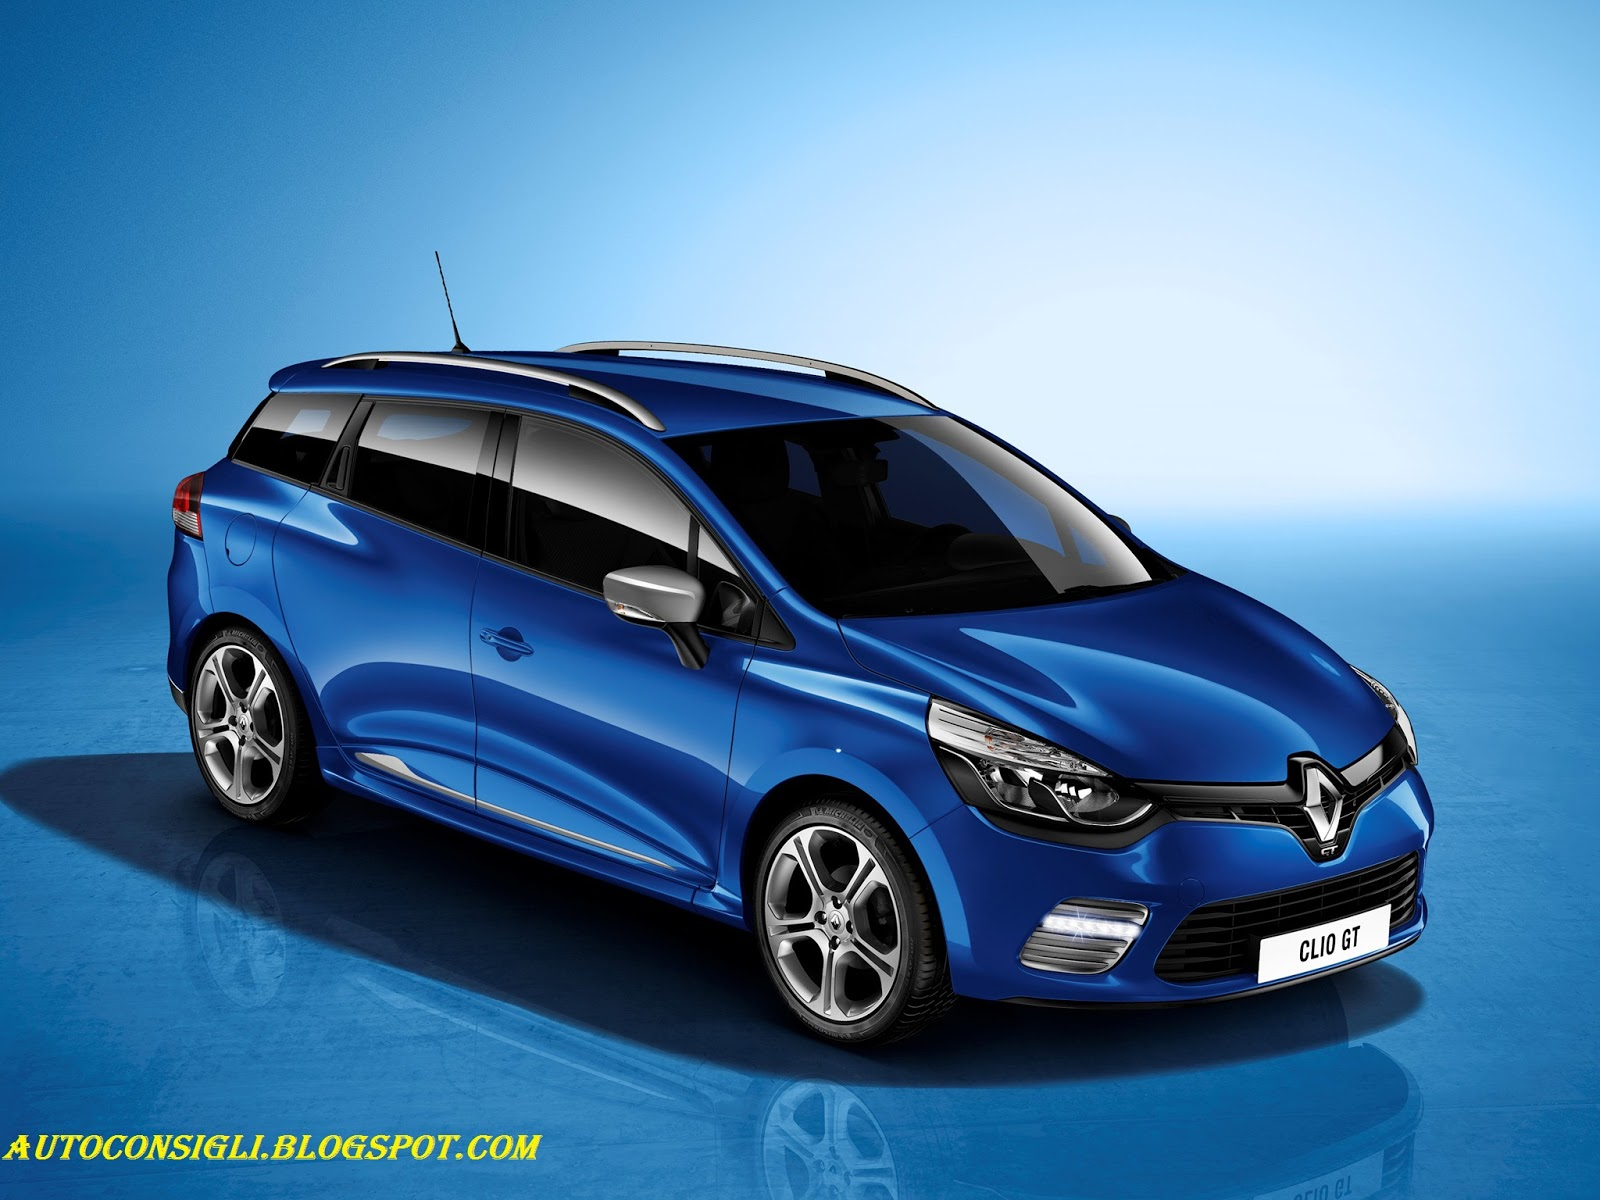 Renault Clio Station Car Al Top 33: Renault Clio 4 Gt 2013: Berlina E Station Wagon